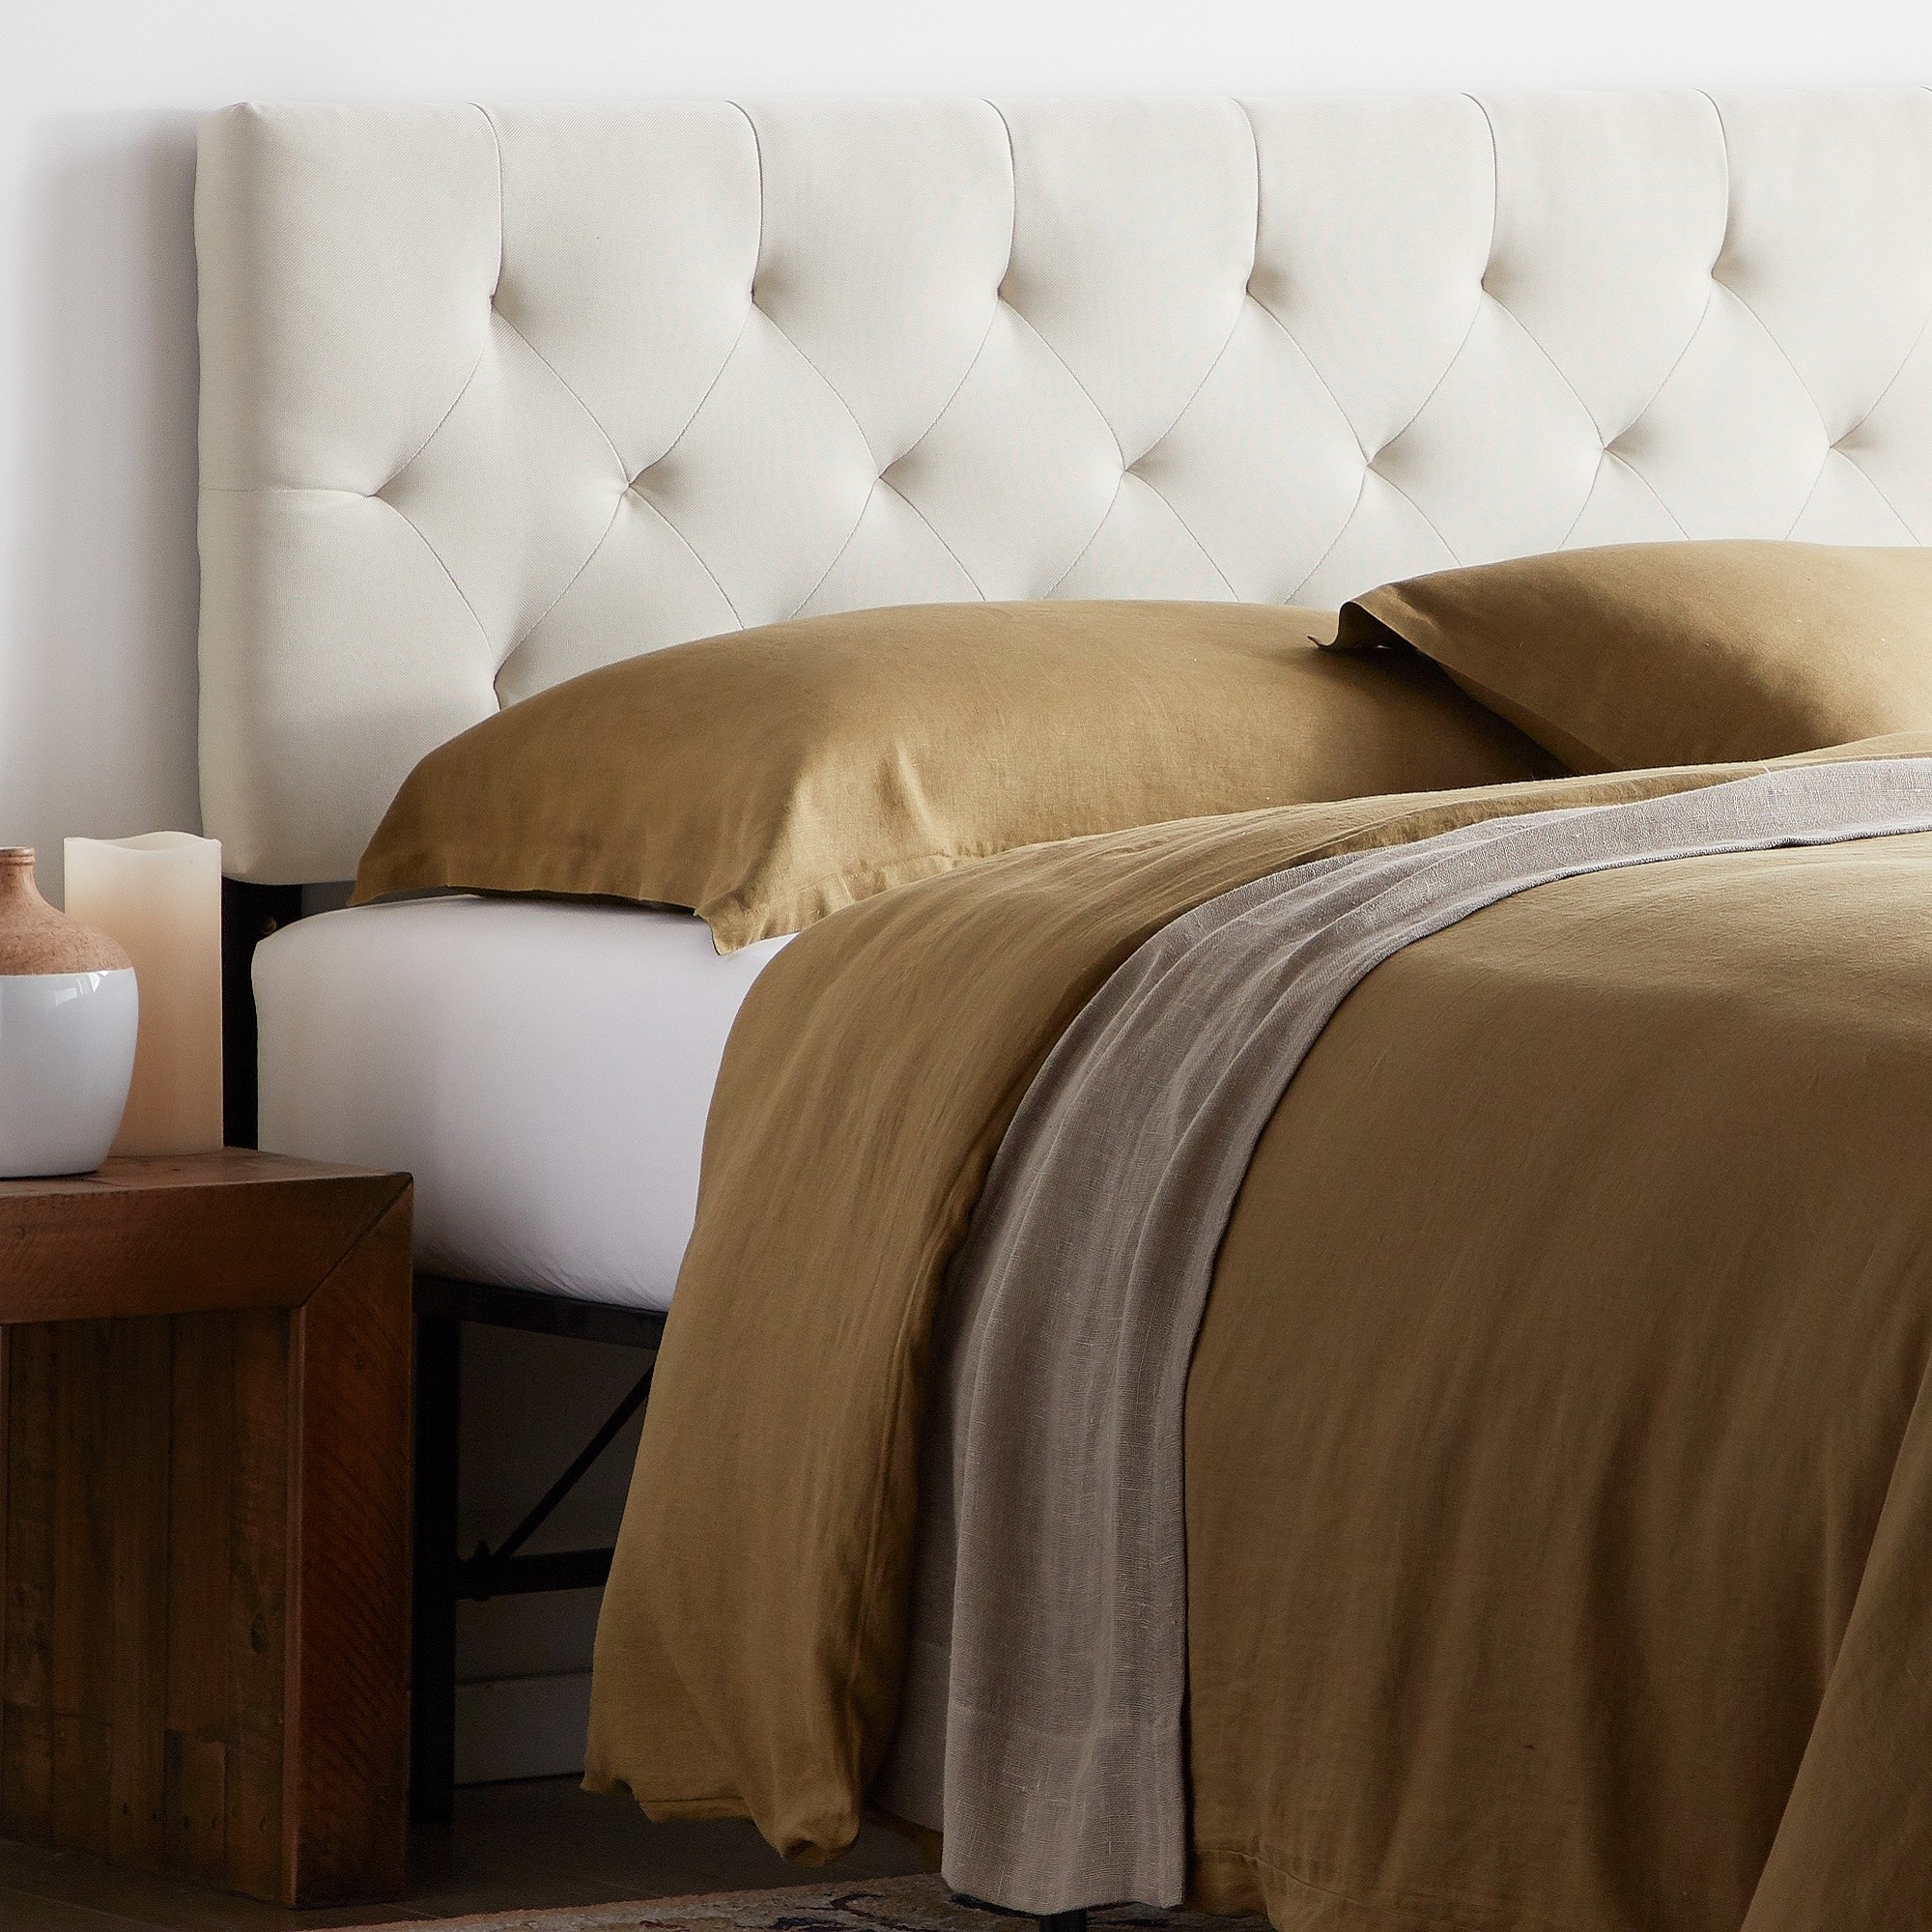 The cream tufted headboard behind a bed